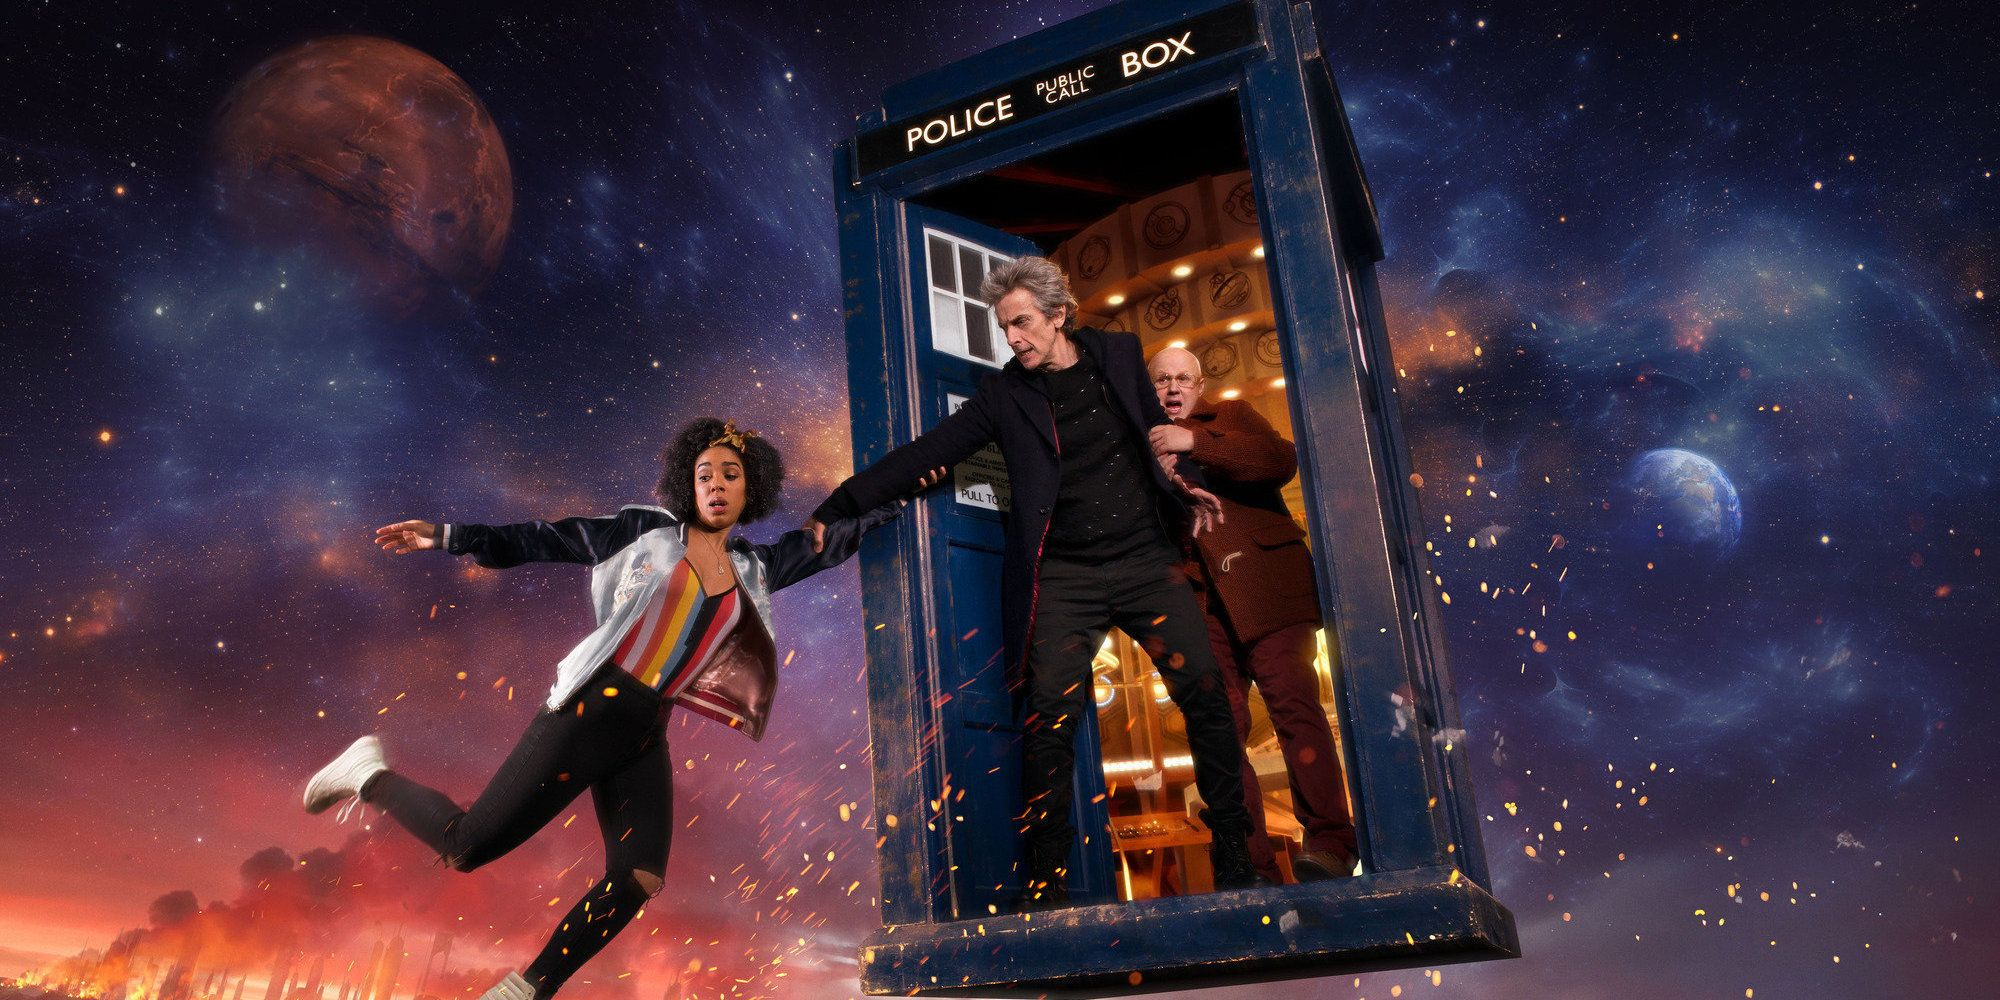 'Doctor Who' returns later this